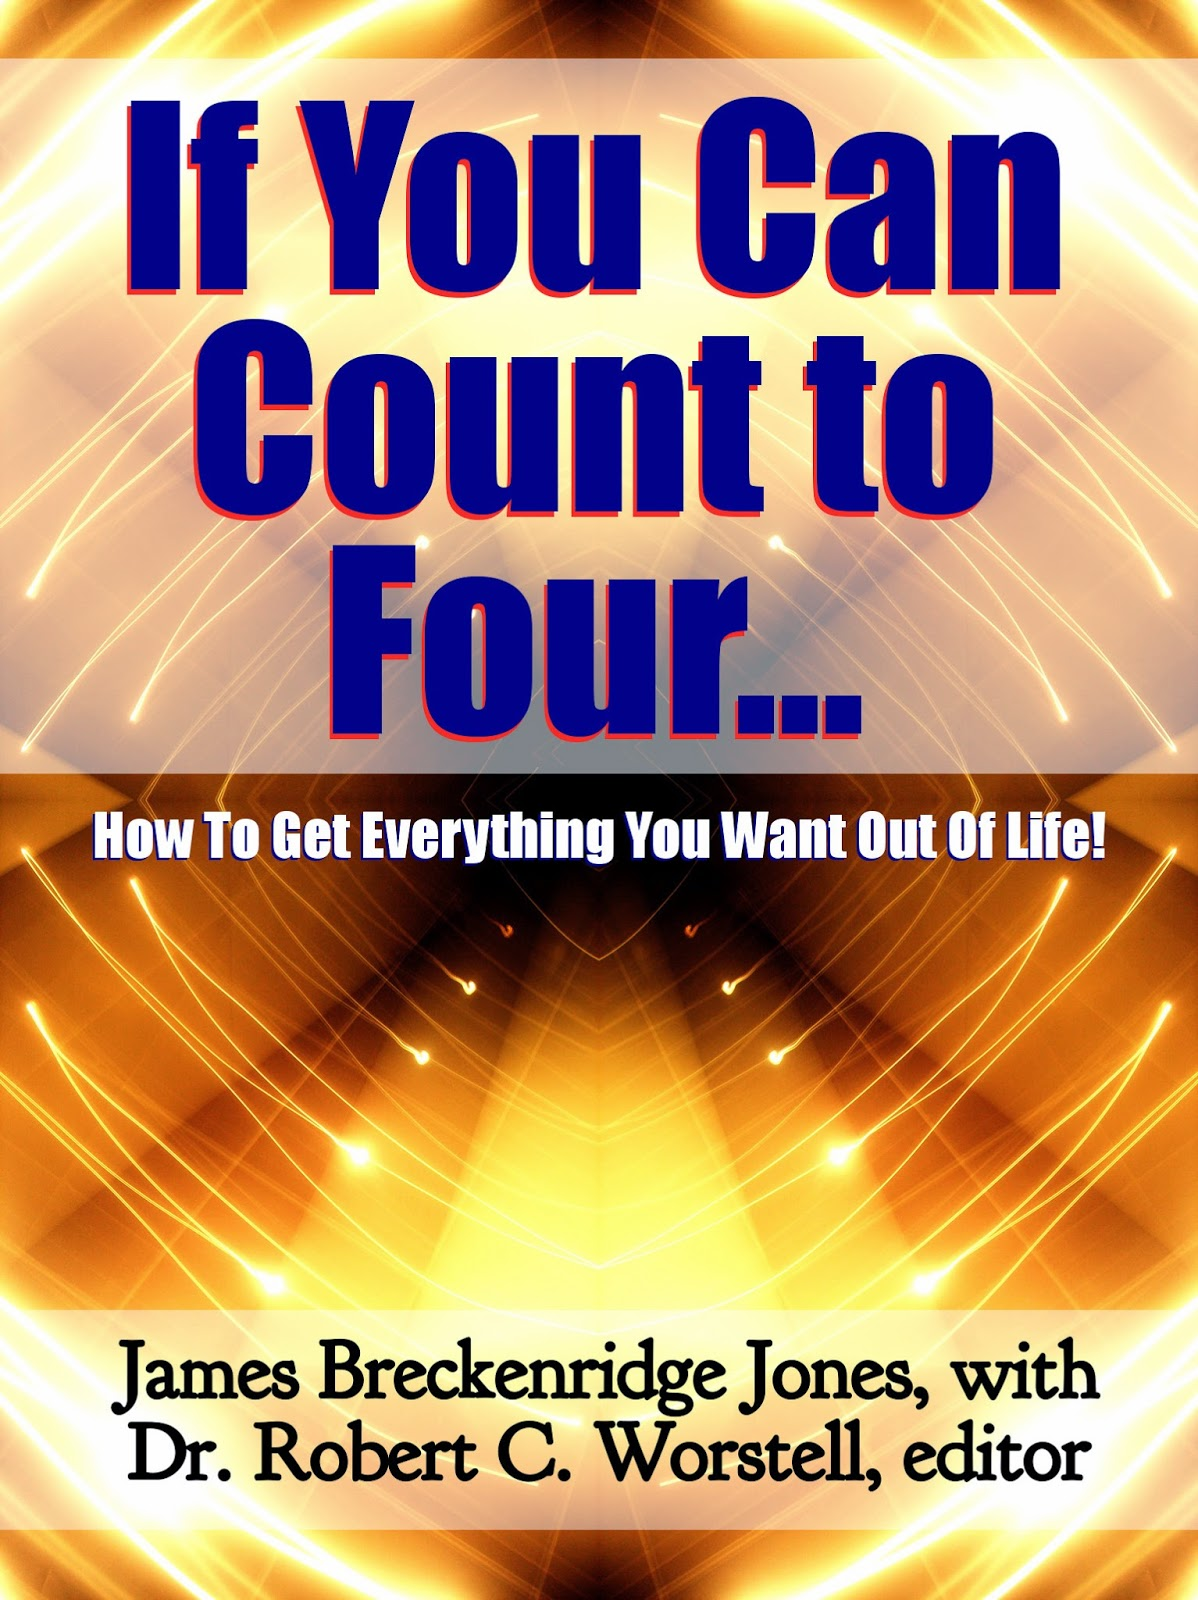 New Release: James Breckenridge Jones' If You Can Count to Four